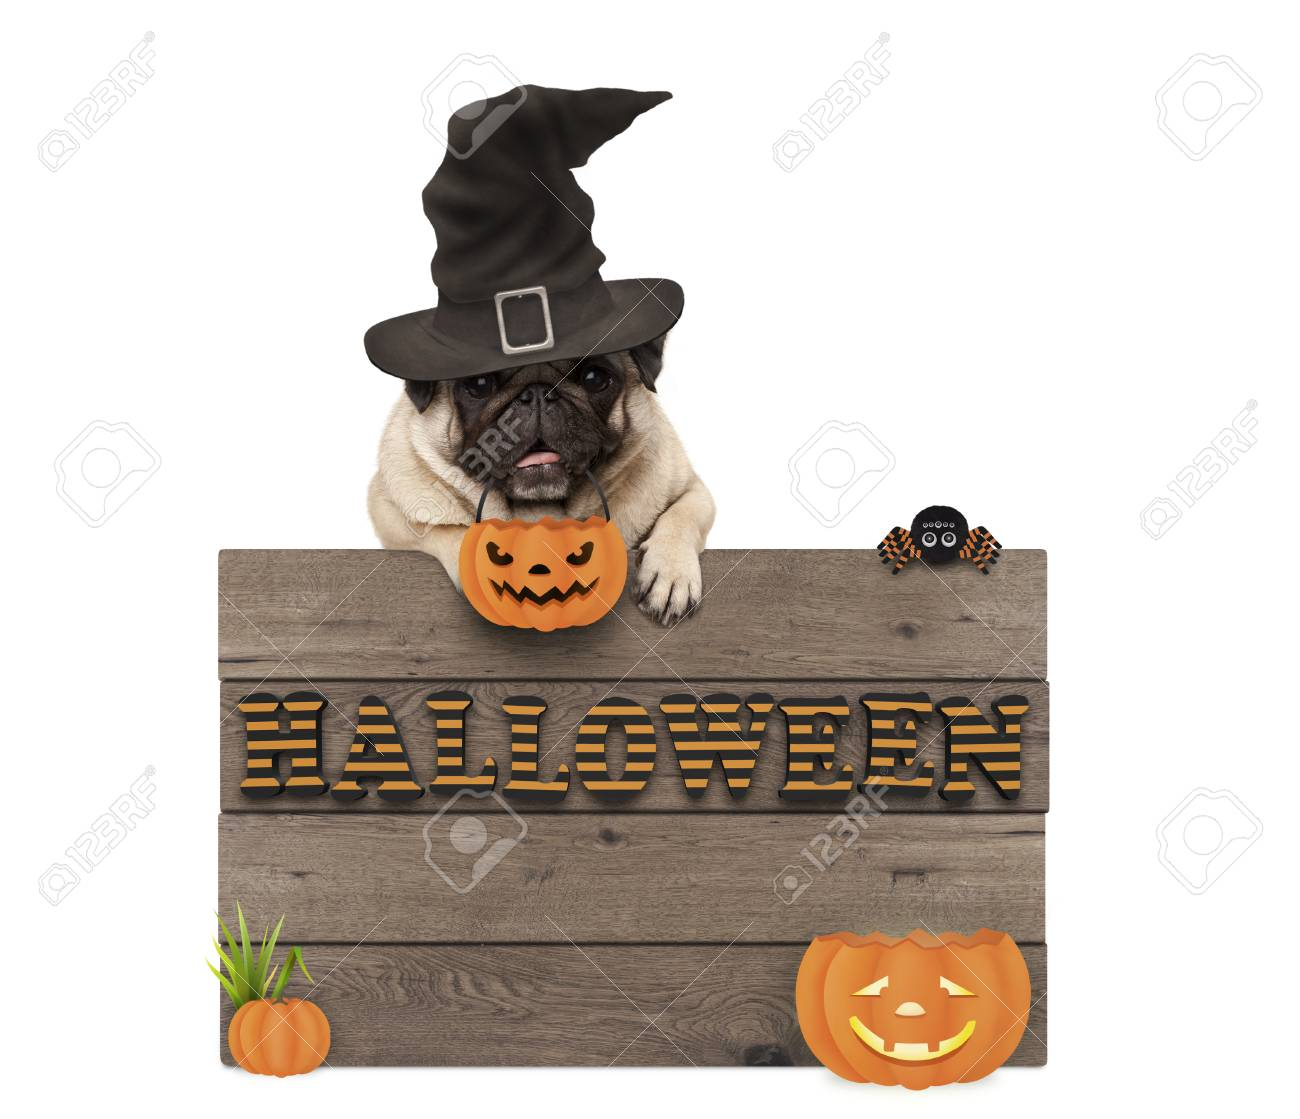 Cute Halloween Pug Puppy Dog With Witch Hat And Pumpkins And Stock Photo Picture And Royalty Free Image Image 88461682